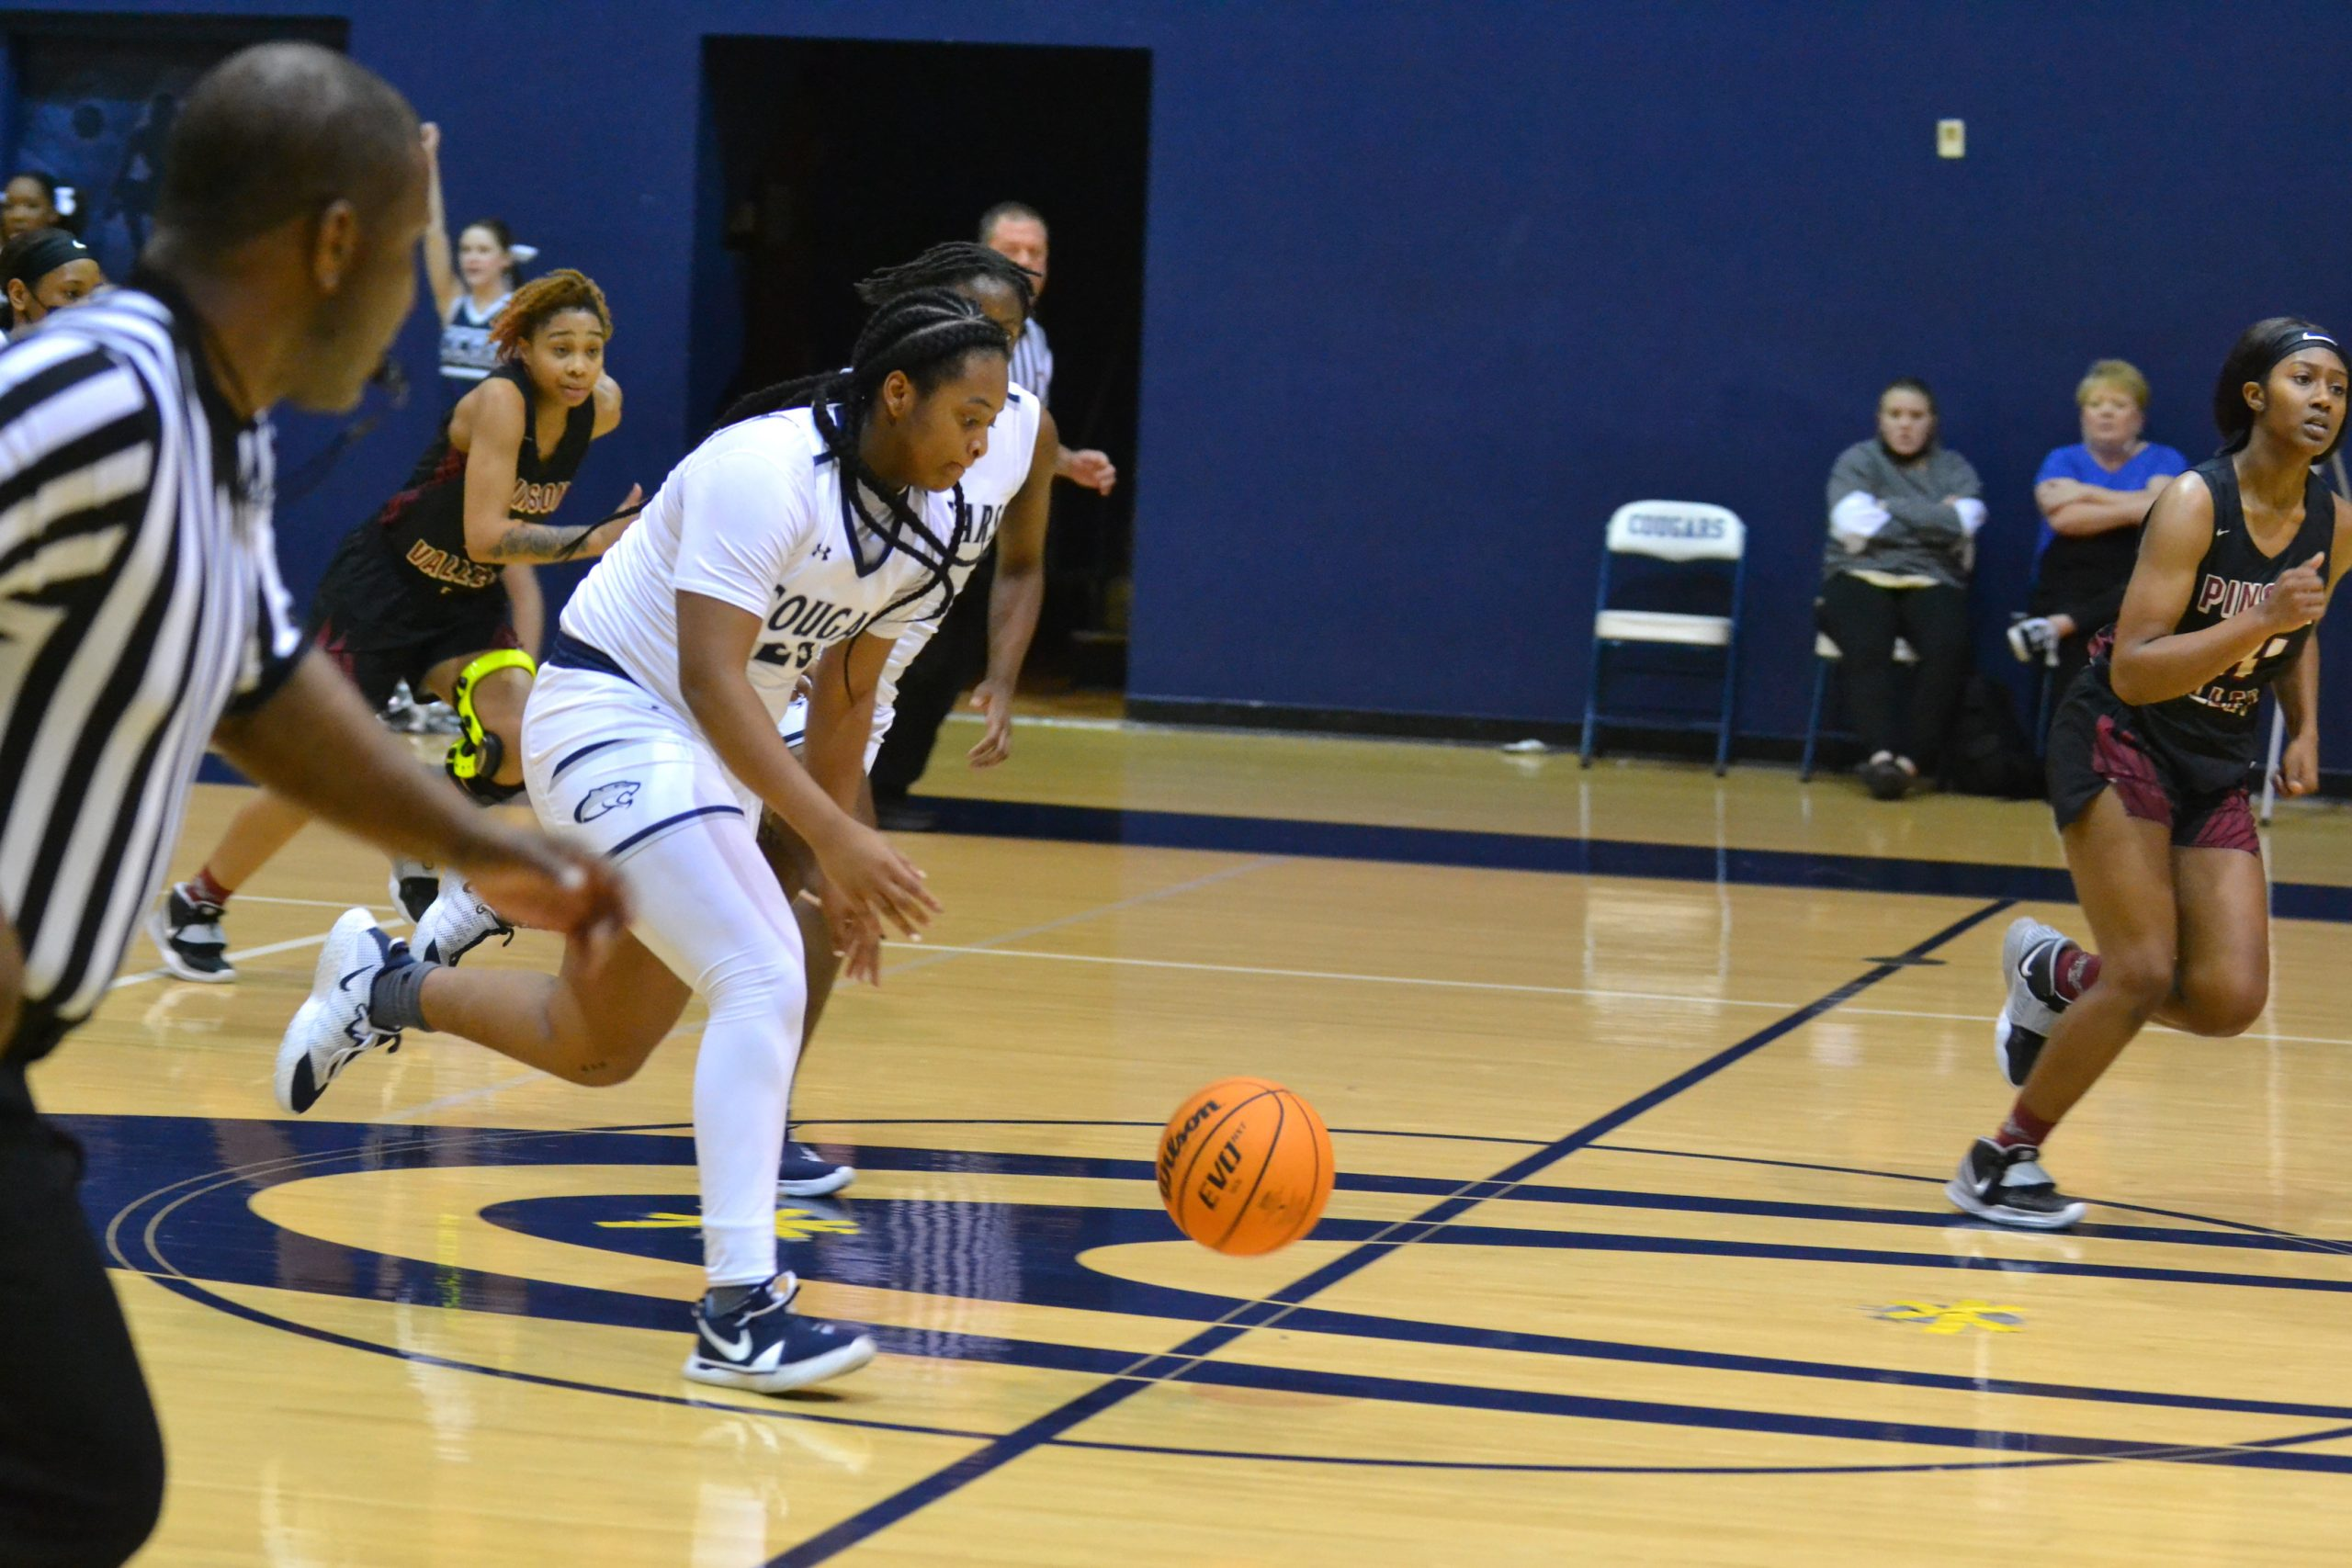 Clay-Chalkville girls thump Pinson, improve to 3-1 in league play